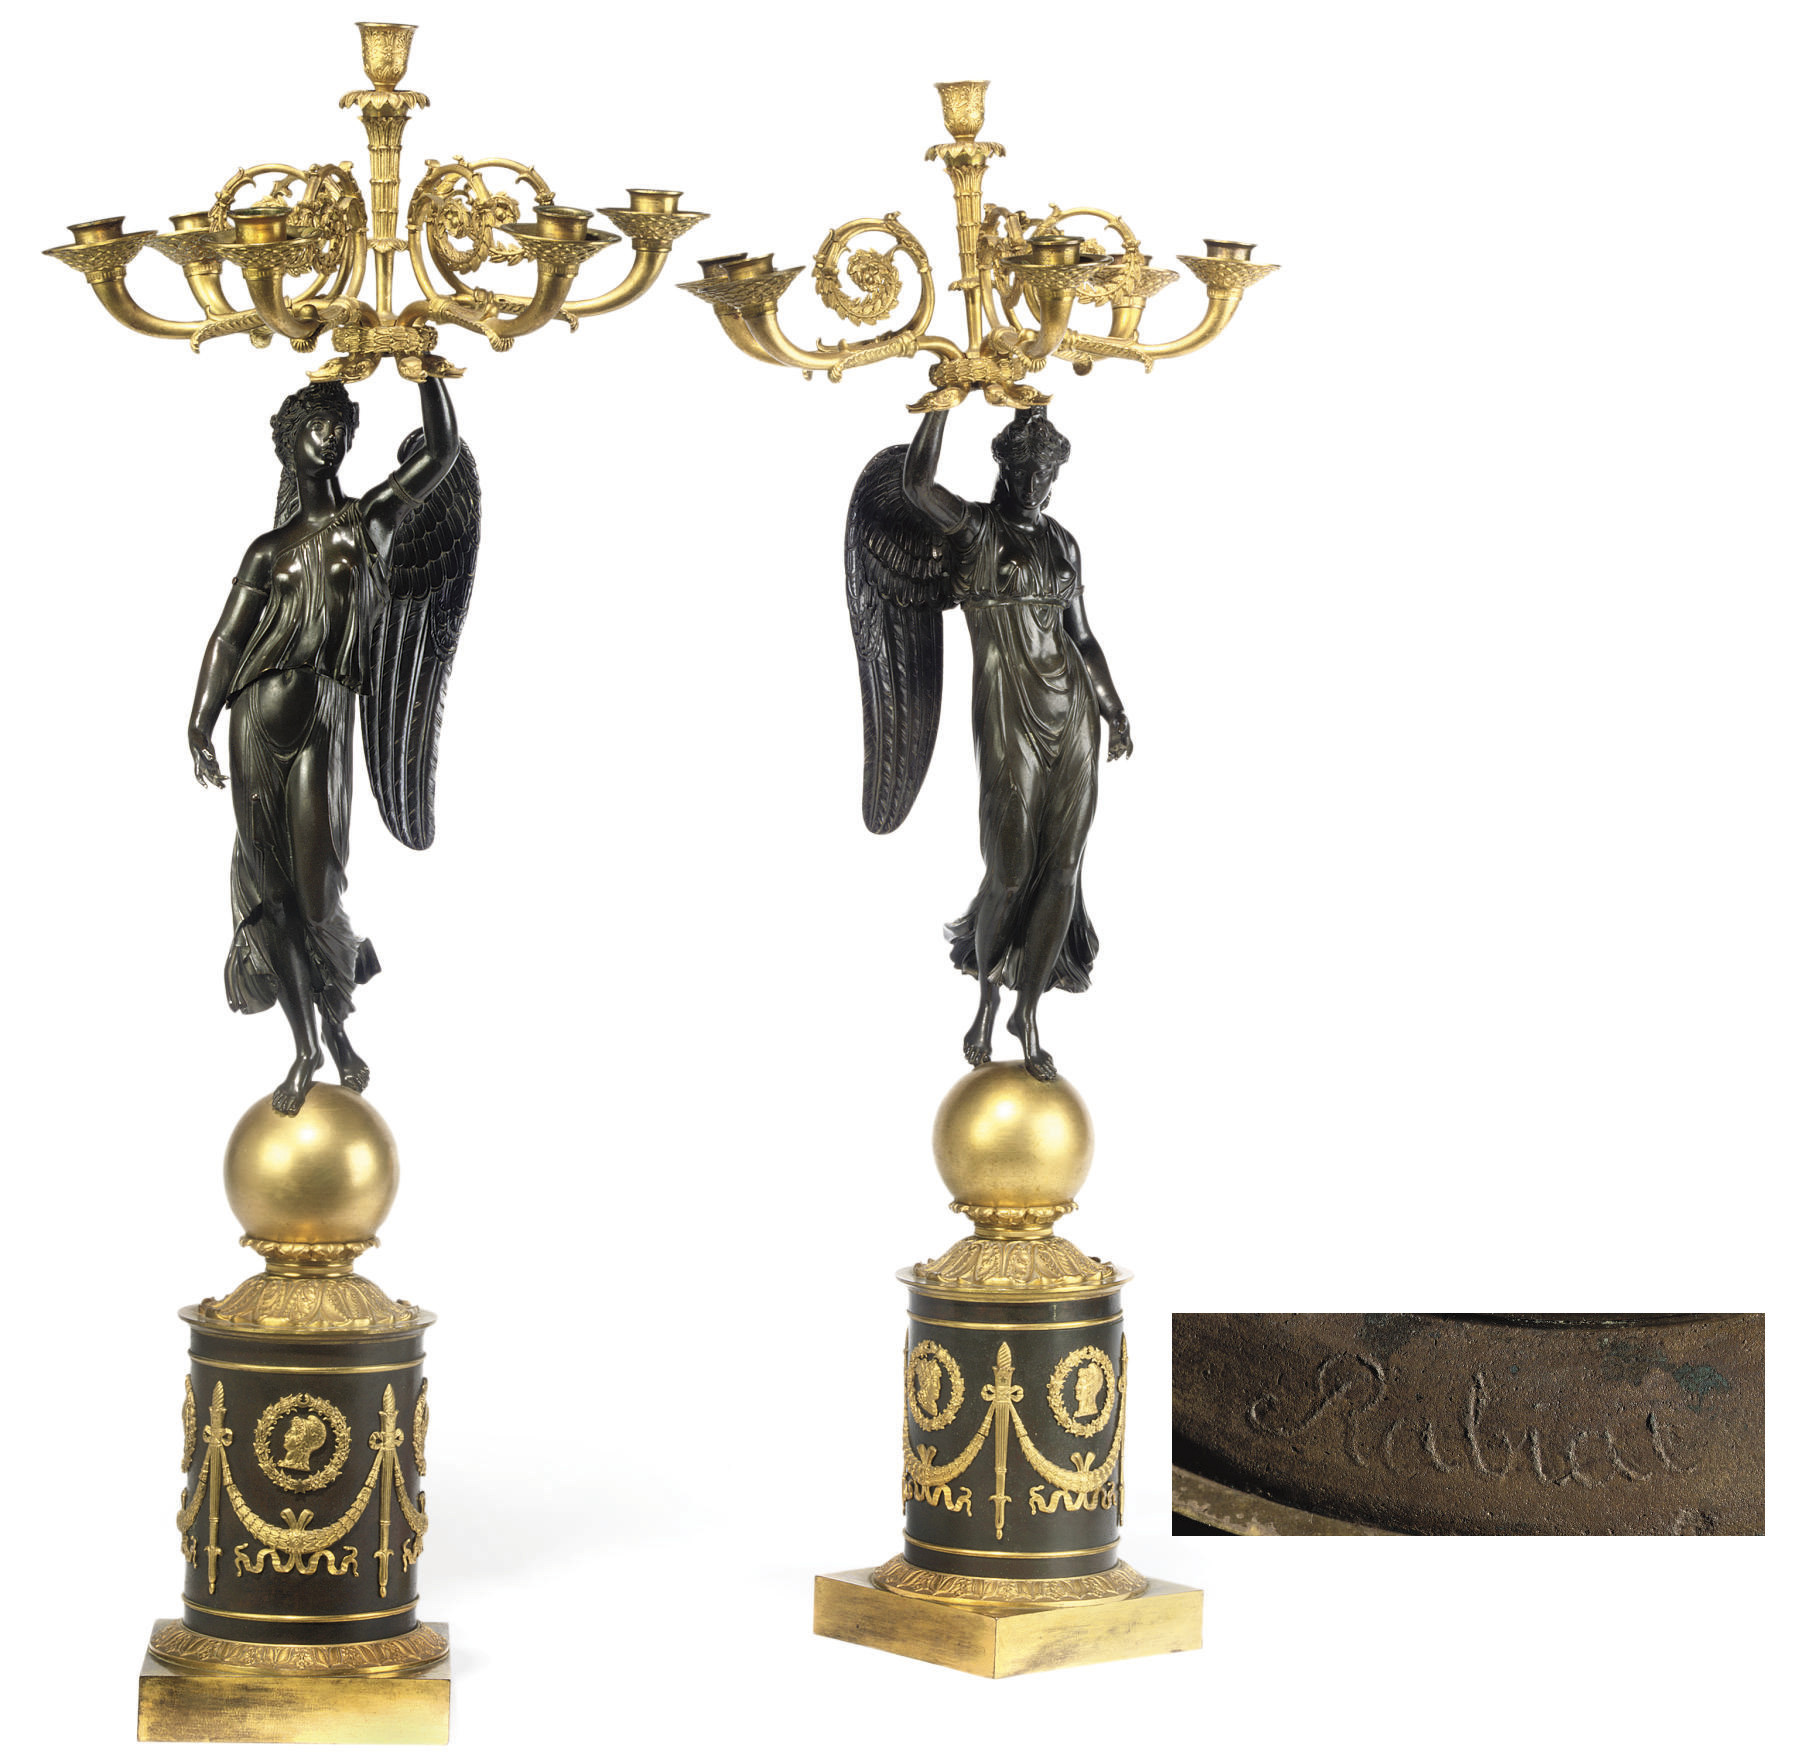 A PAIR OF EMPIRE ORMOLU AND PATINATED BRONZE SIX-LIGHT CANDELABRA